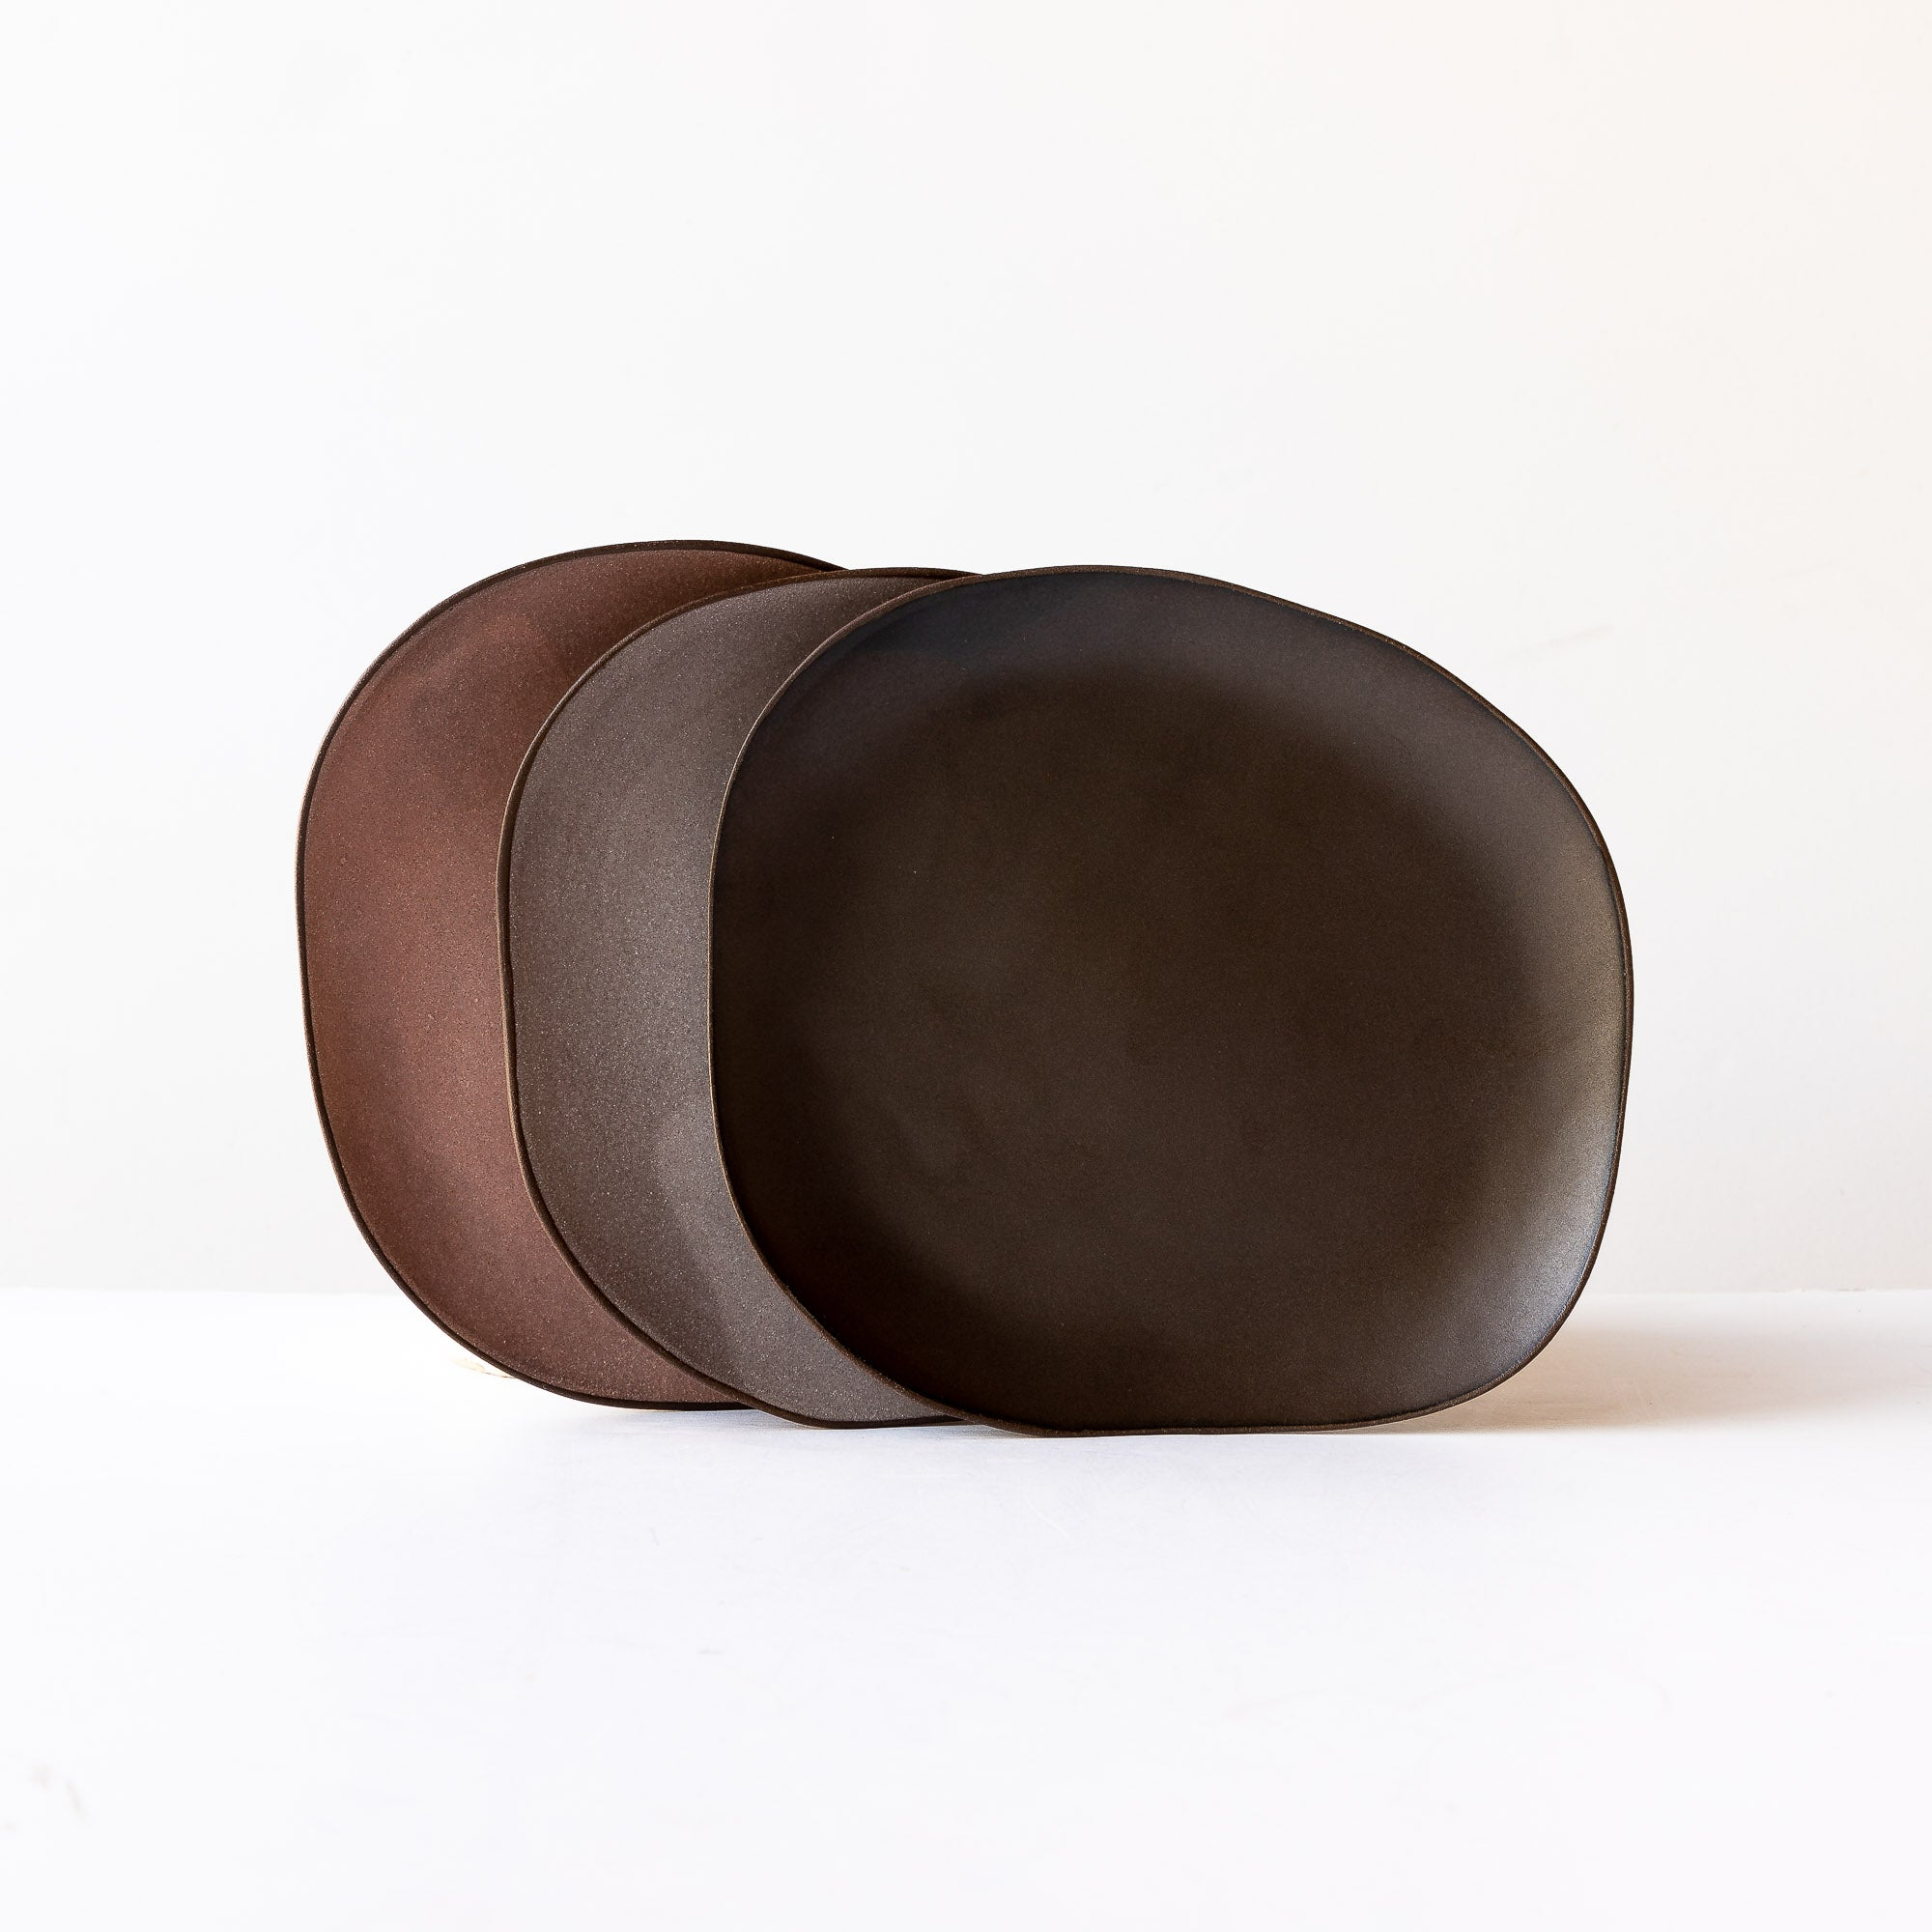 Three Handcrafted Organic Shaped Medium Stoneware Plates - Sold by Chic & Basta